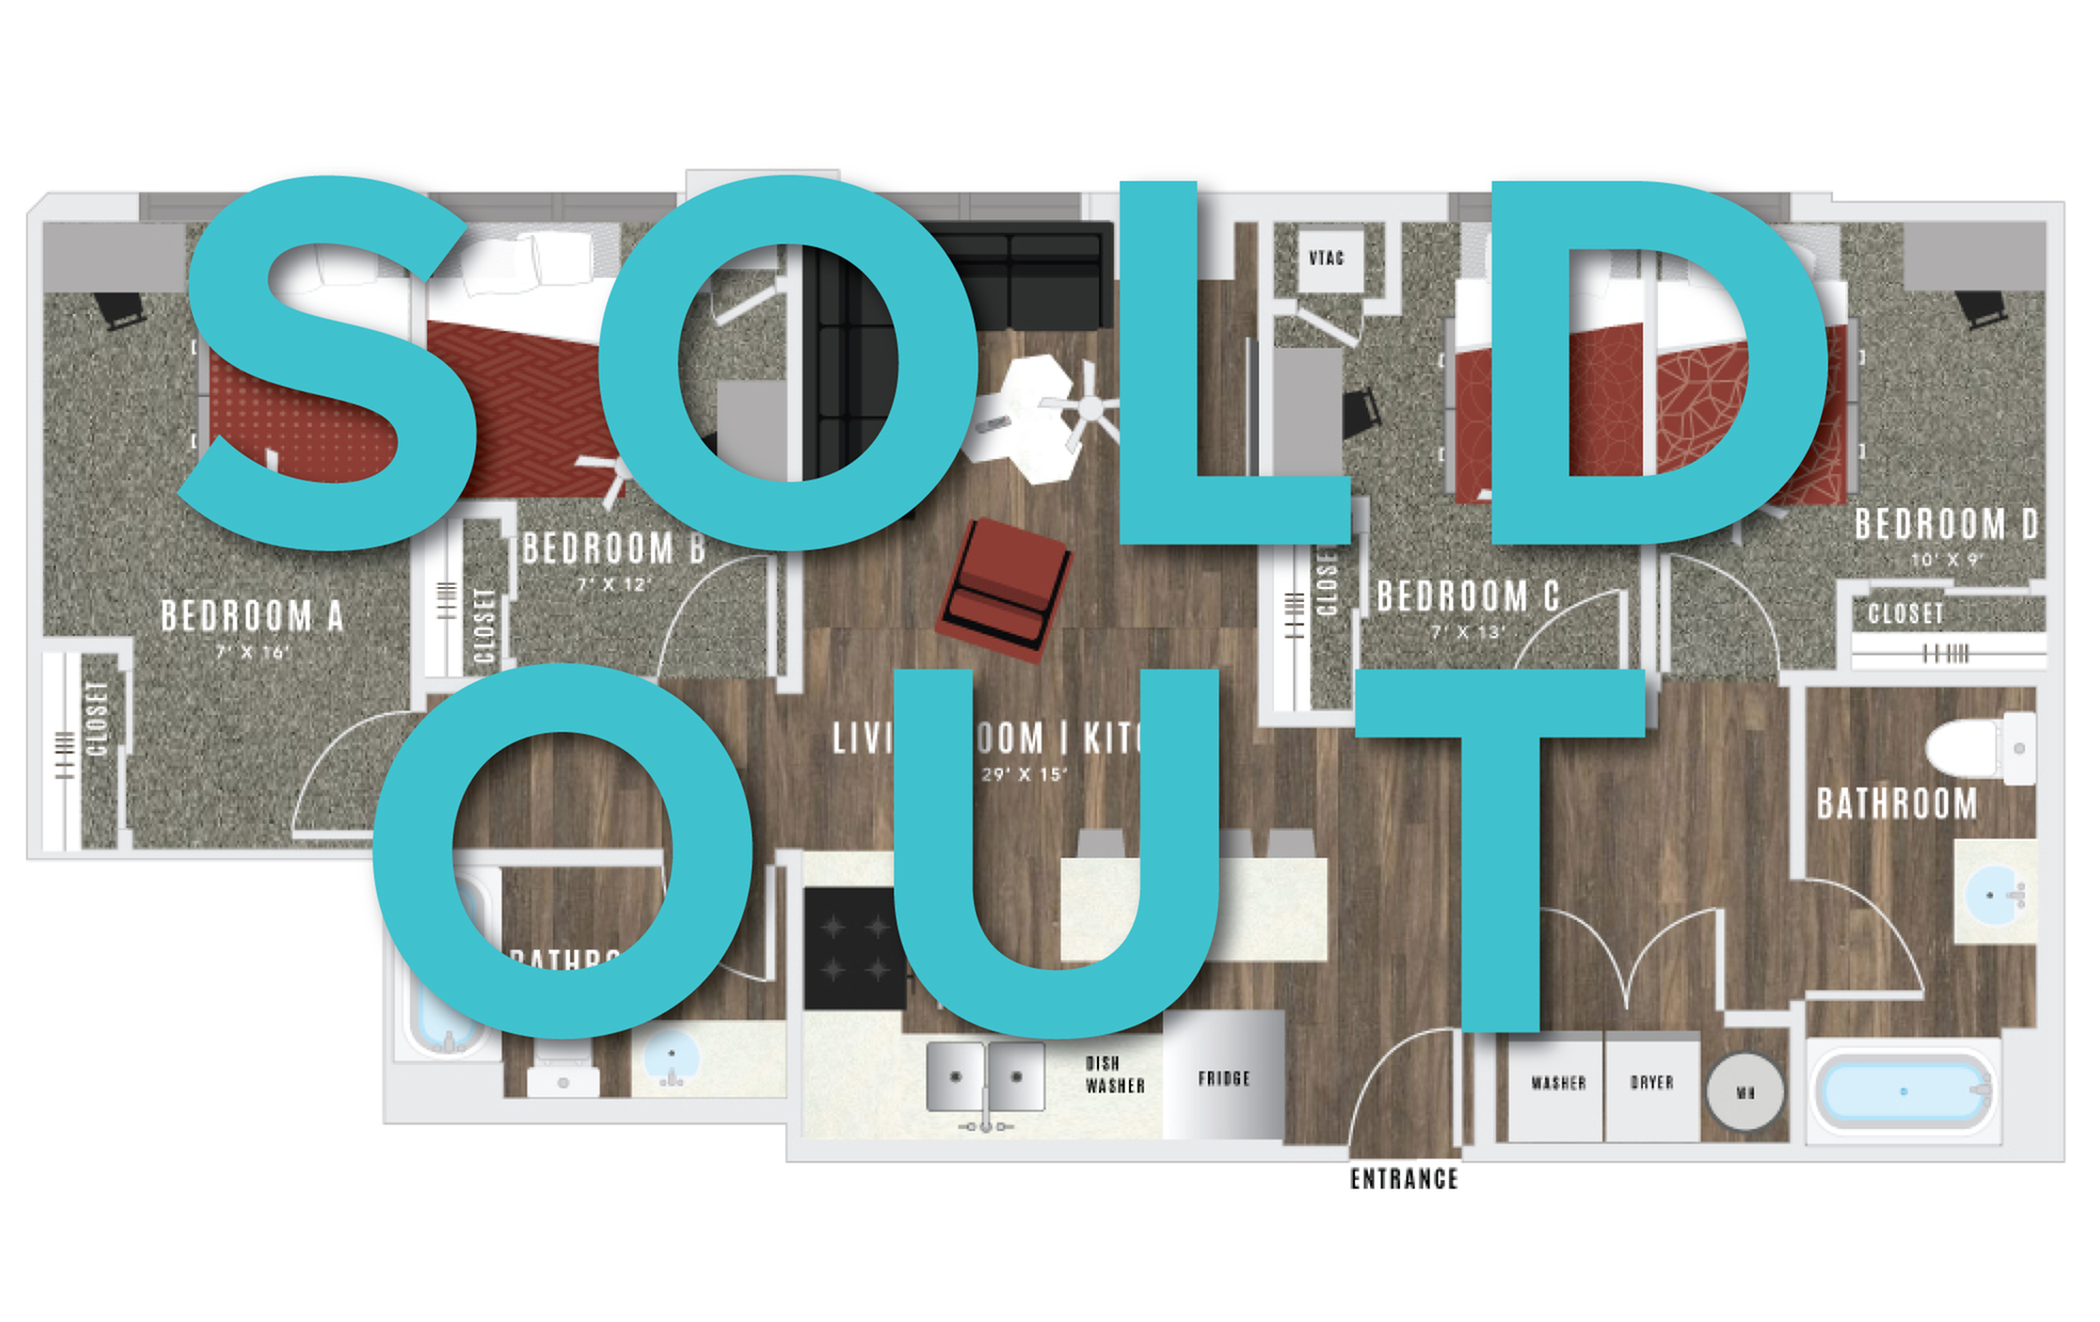 **SOLD OUT**